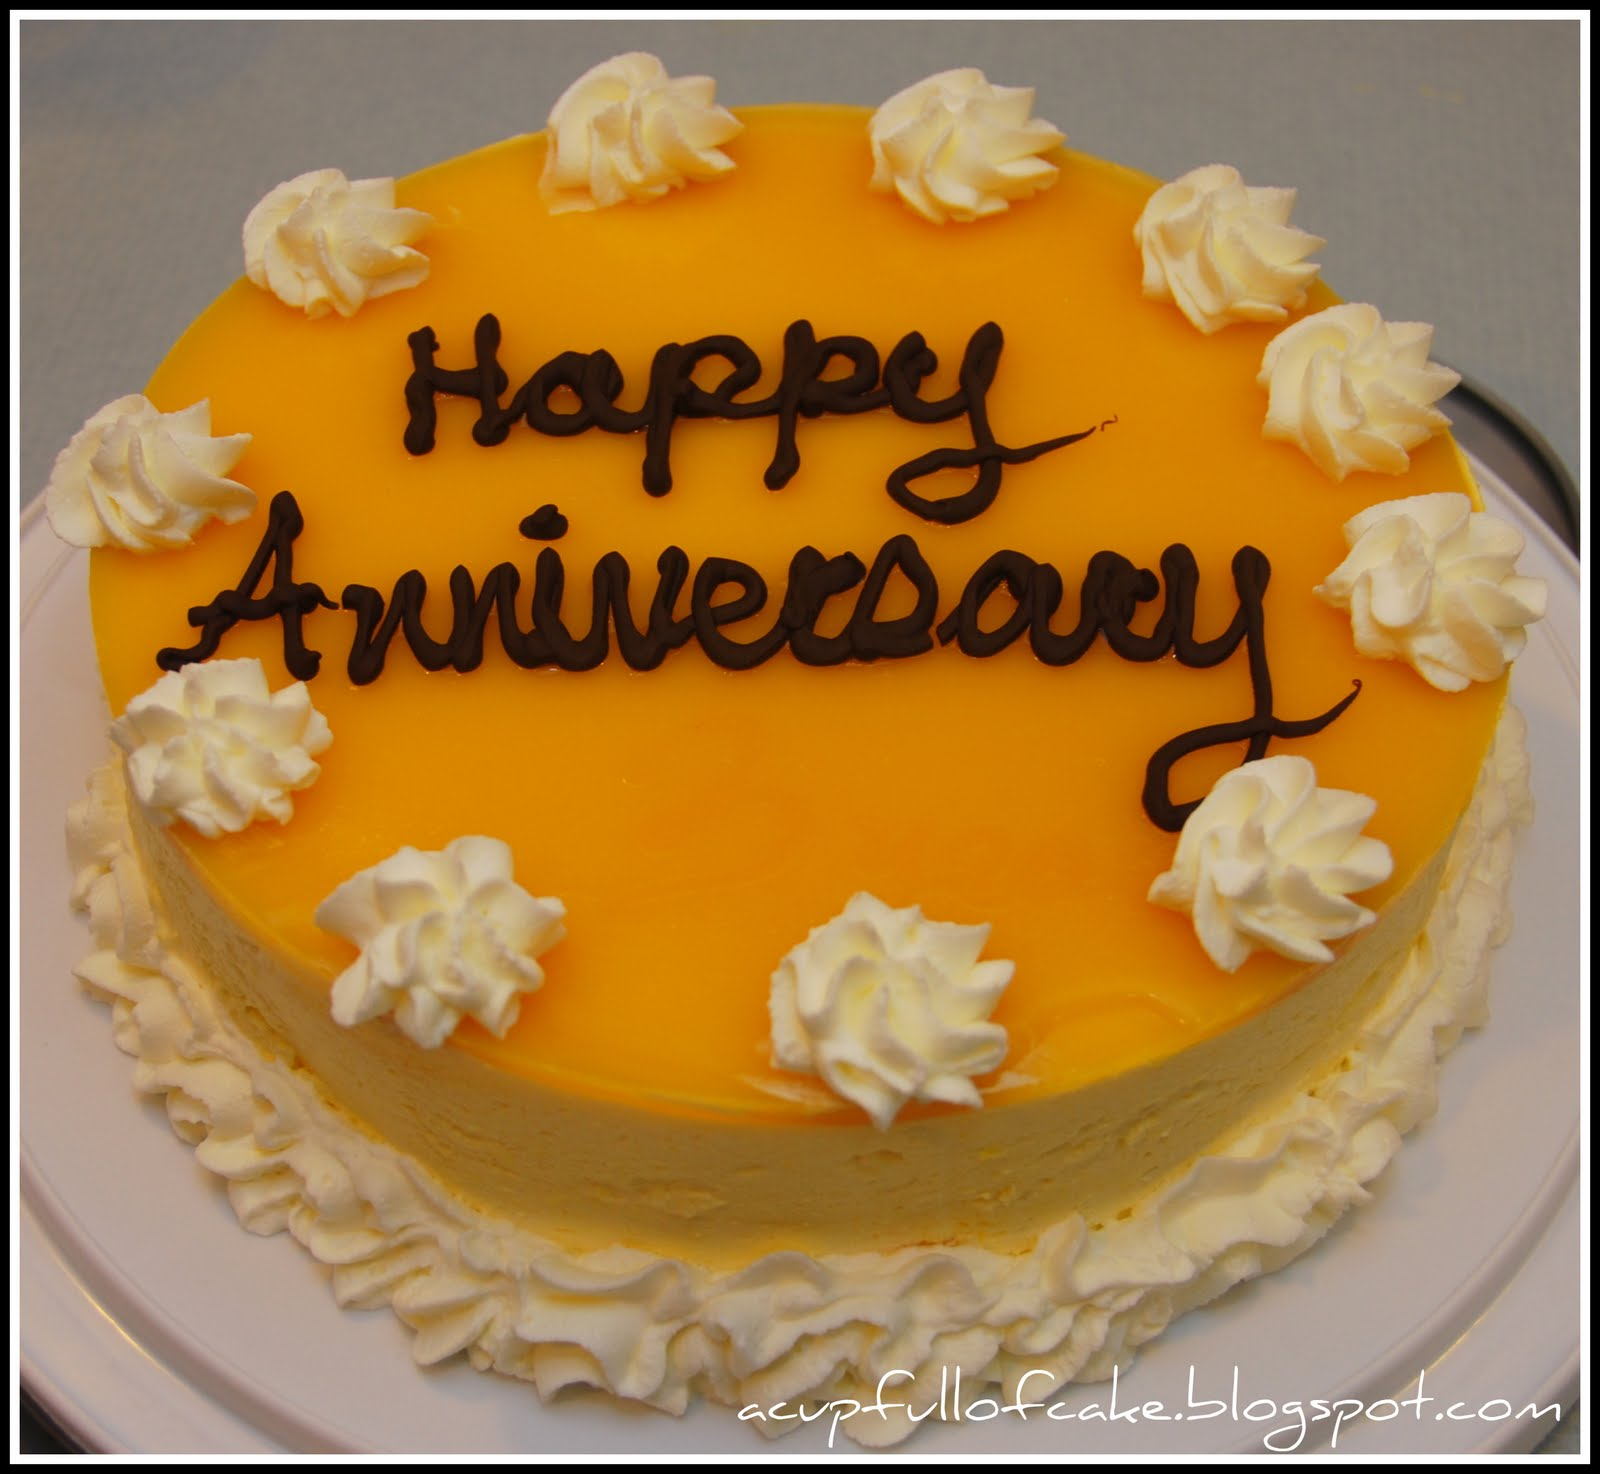 Cake Pics For Marriage Anniversary : A Cup Full of Cake: Mango Mousse Anniversary Cake